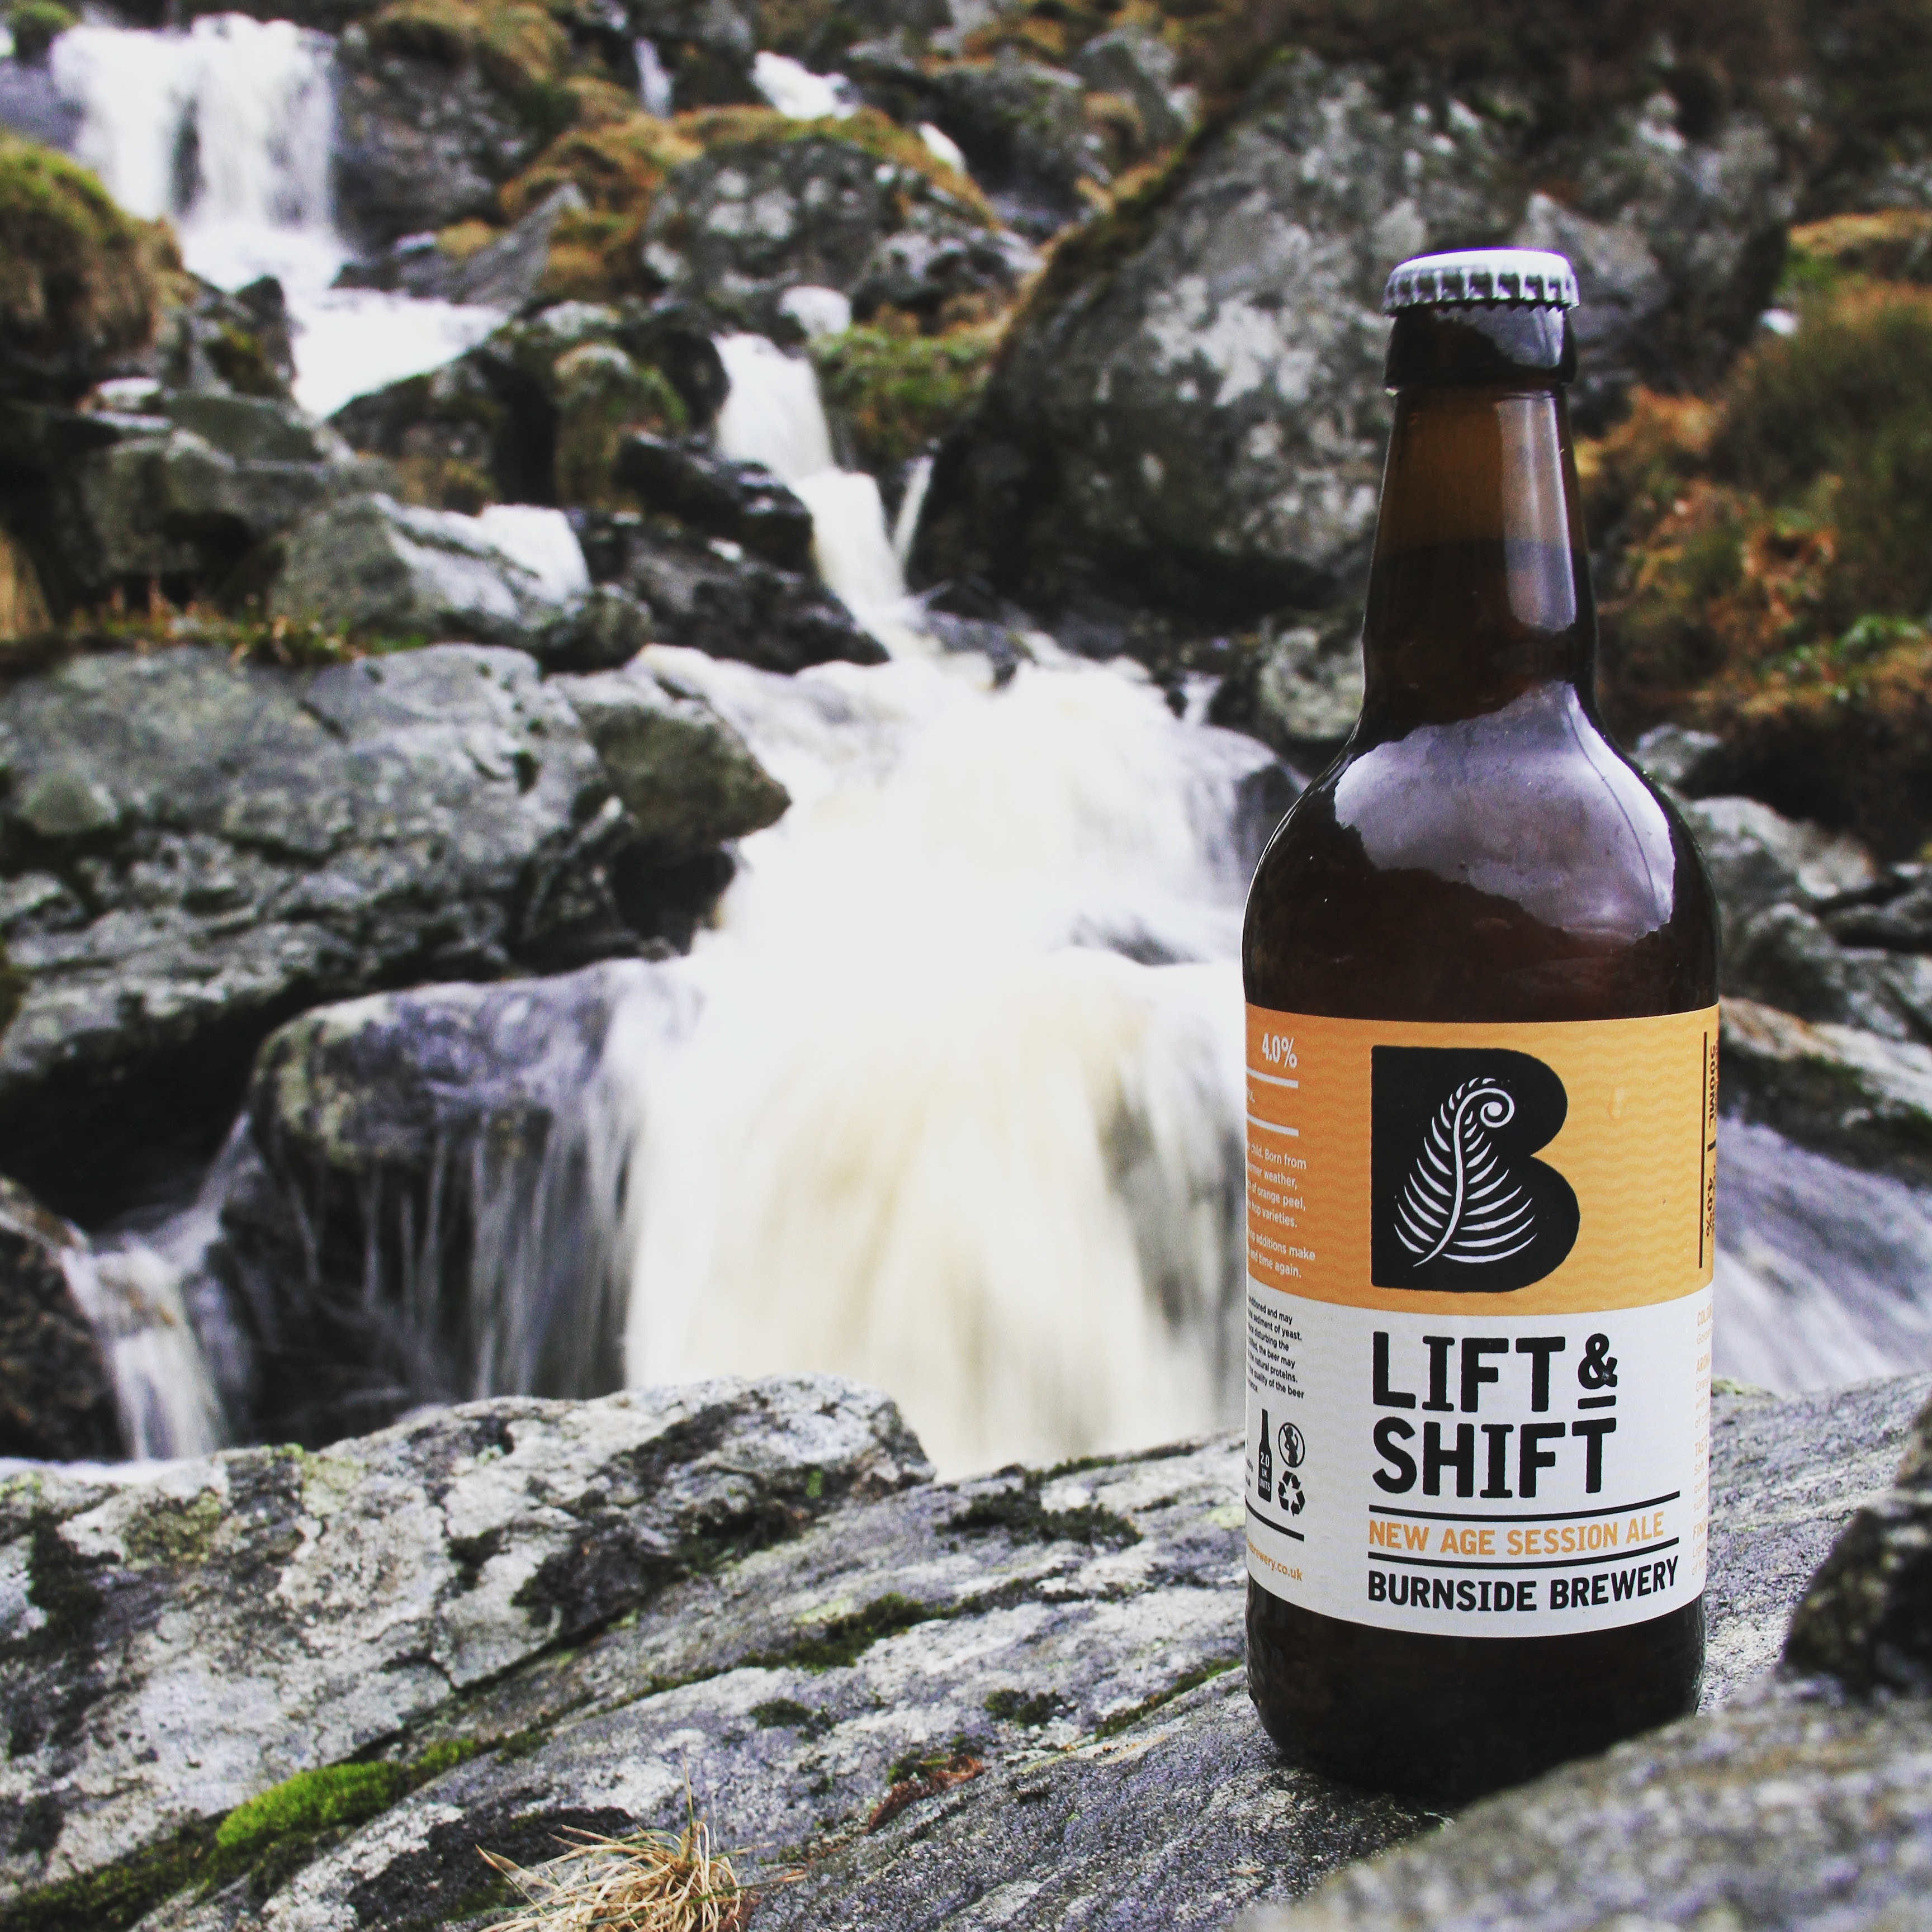 The craft beer, Lift & Shift, out in the Scottish wilderness